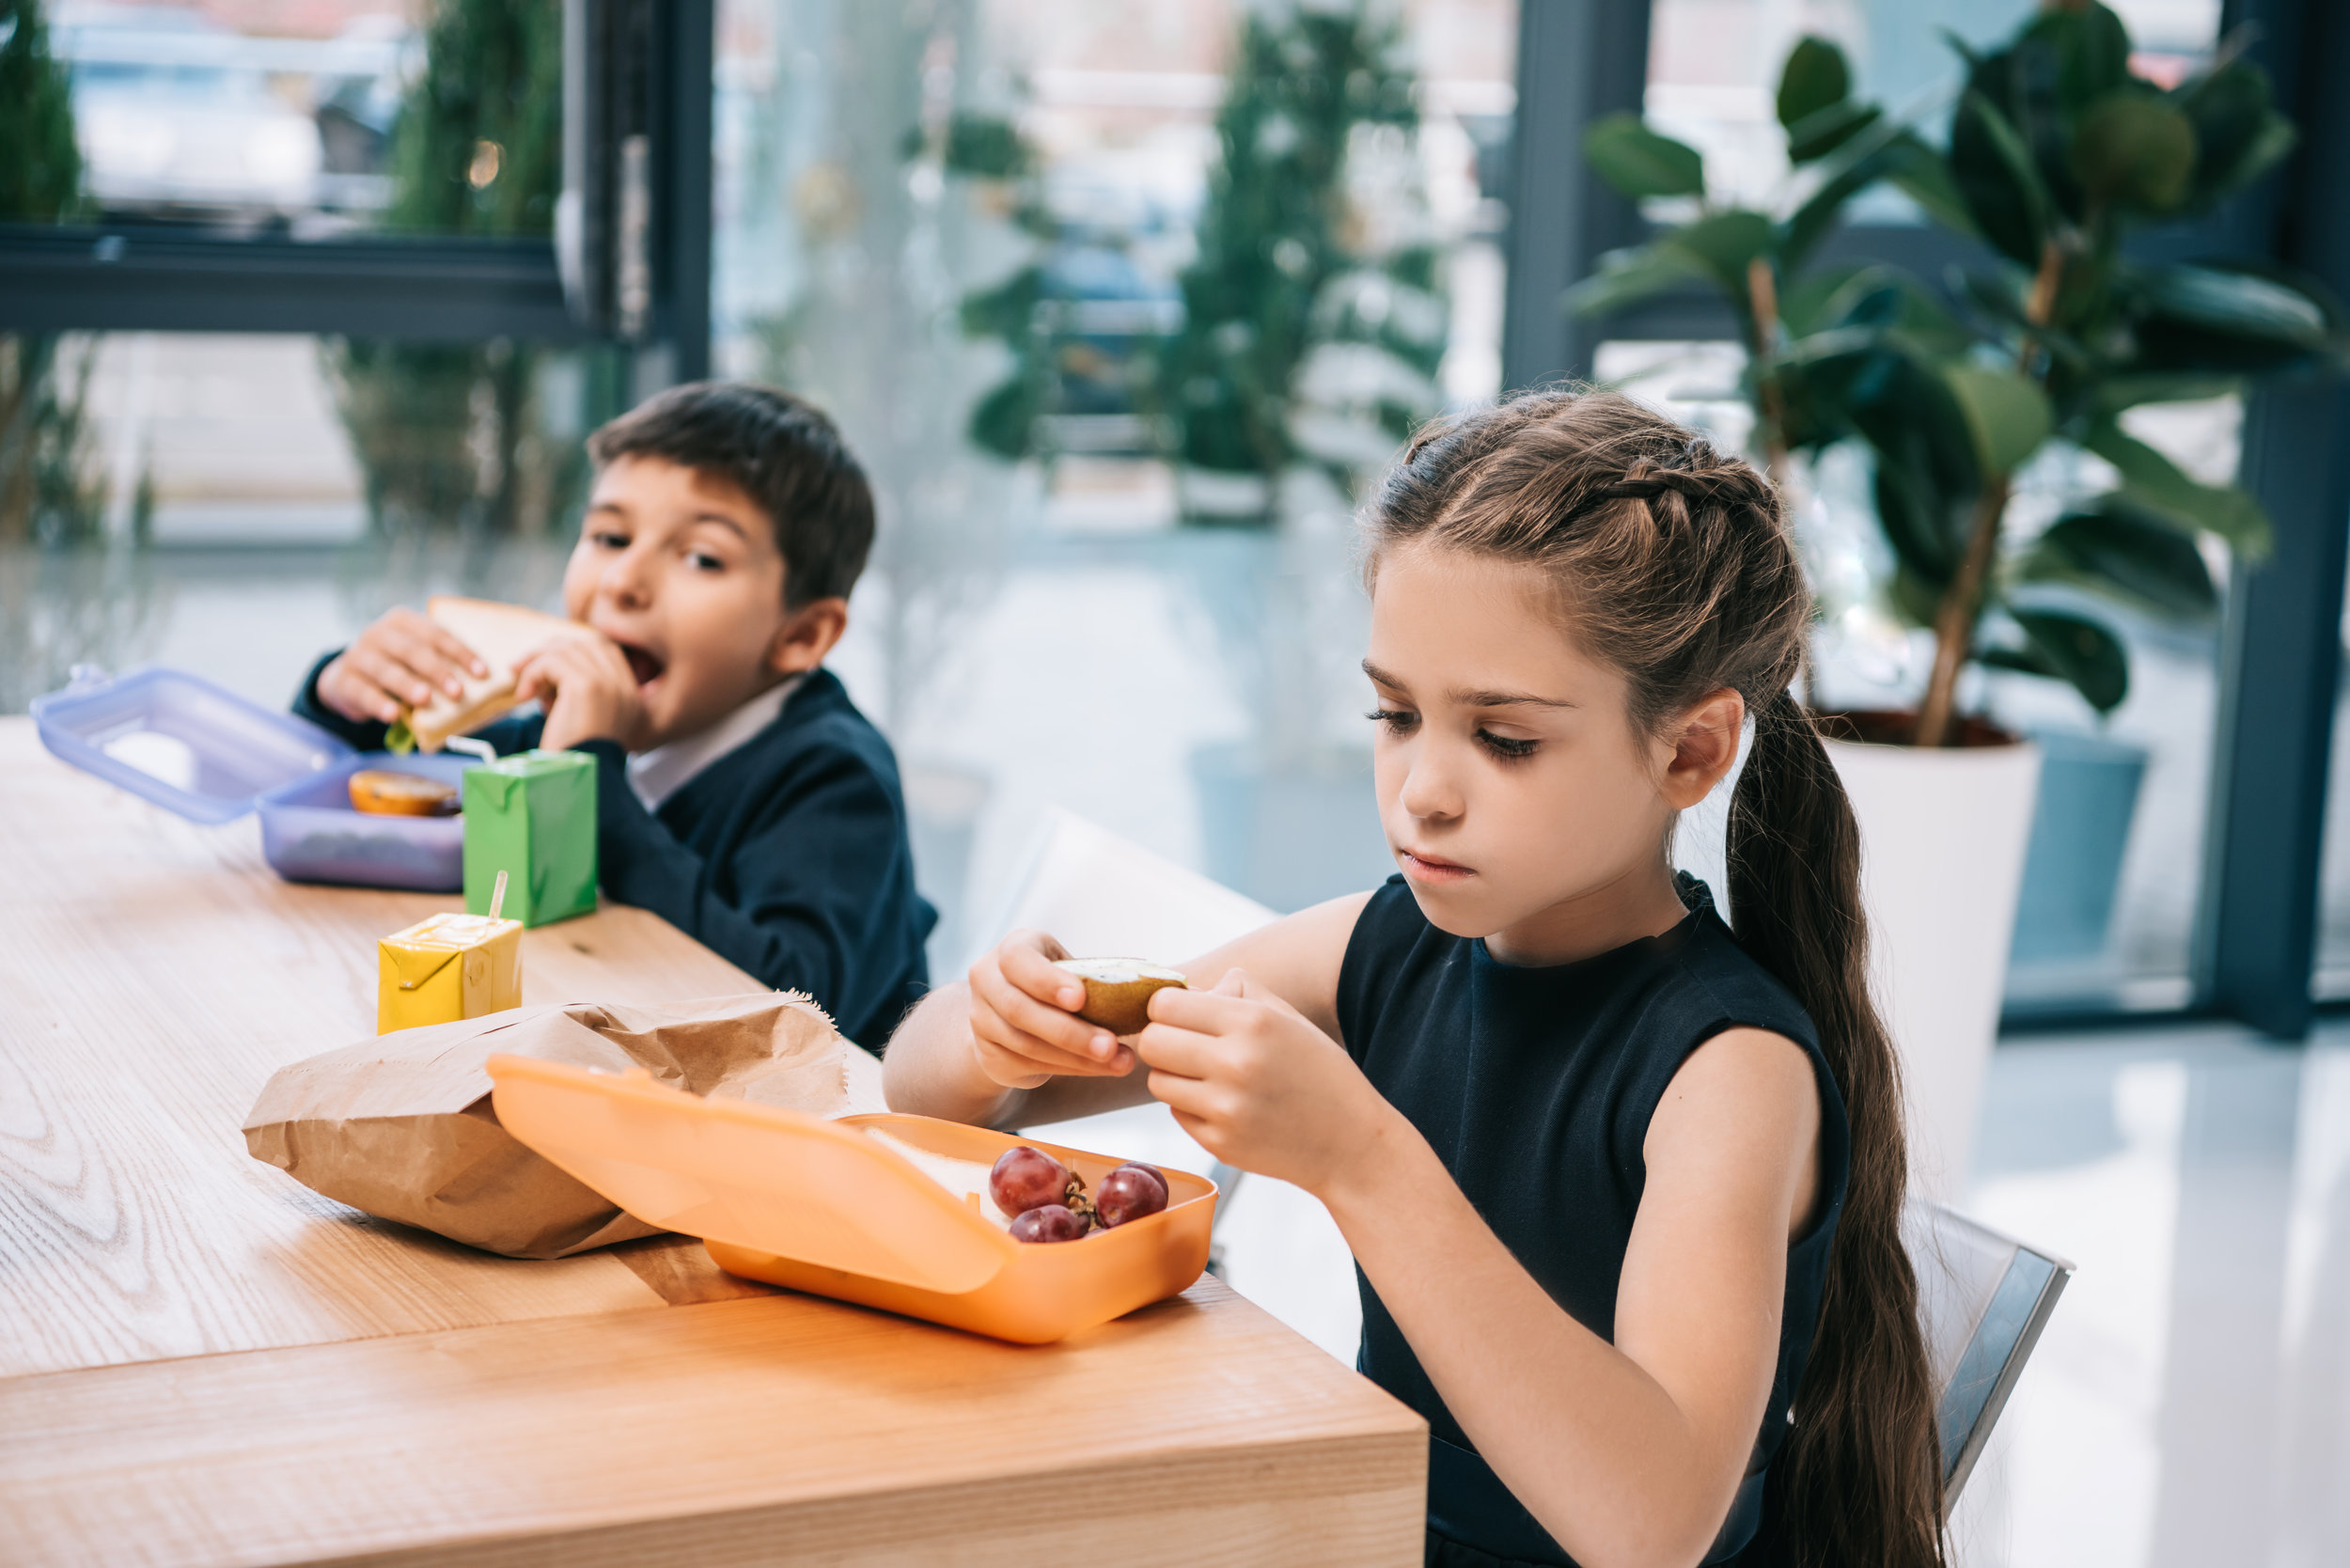 Making Lunches for Highly Sensitive Kids